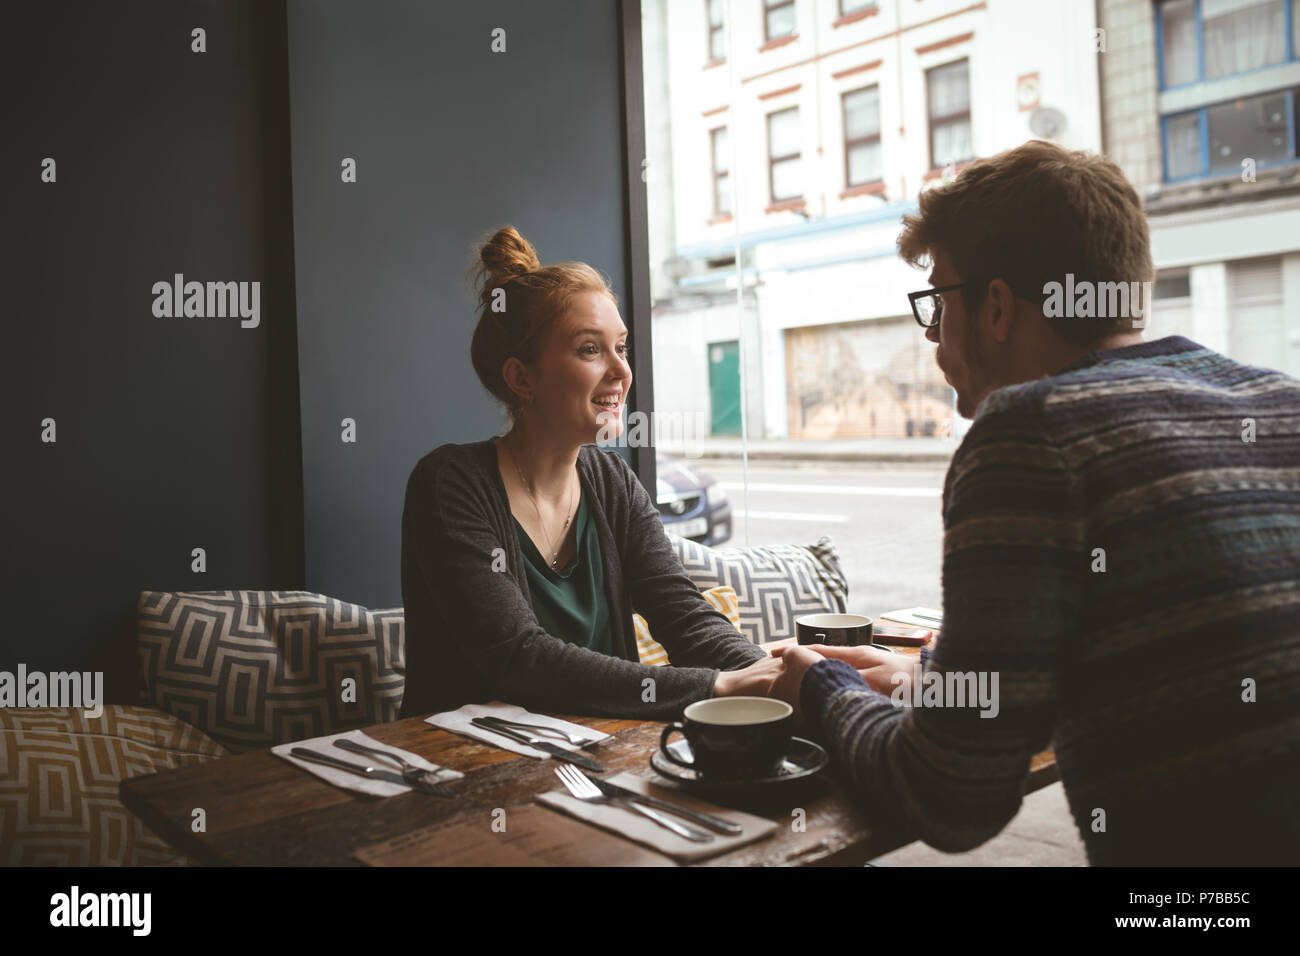 Couple holding hands in the cafe Photo Stock